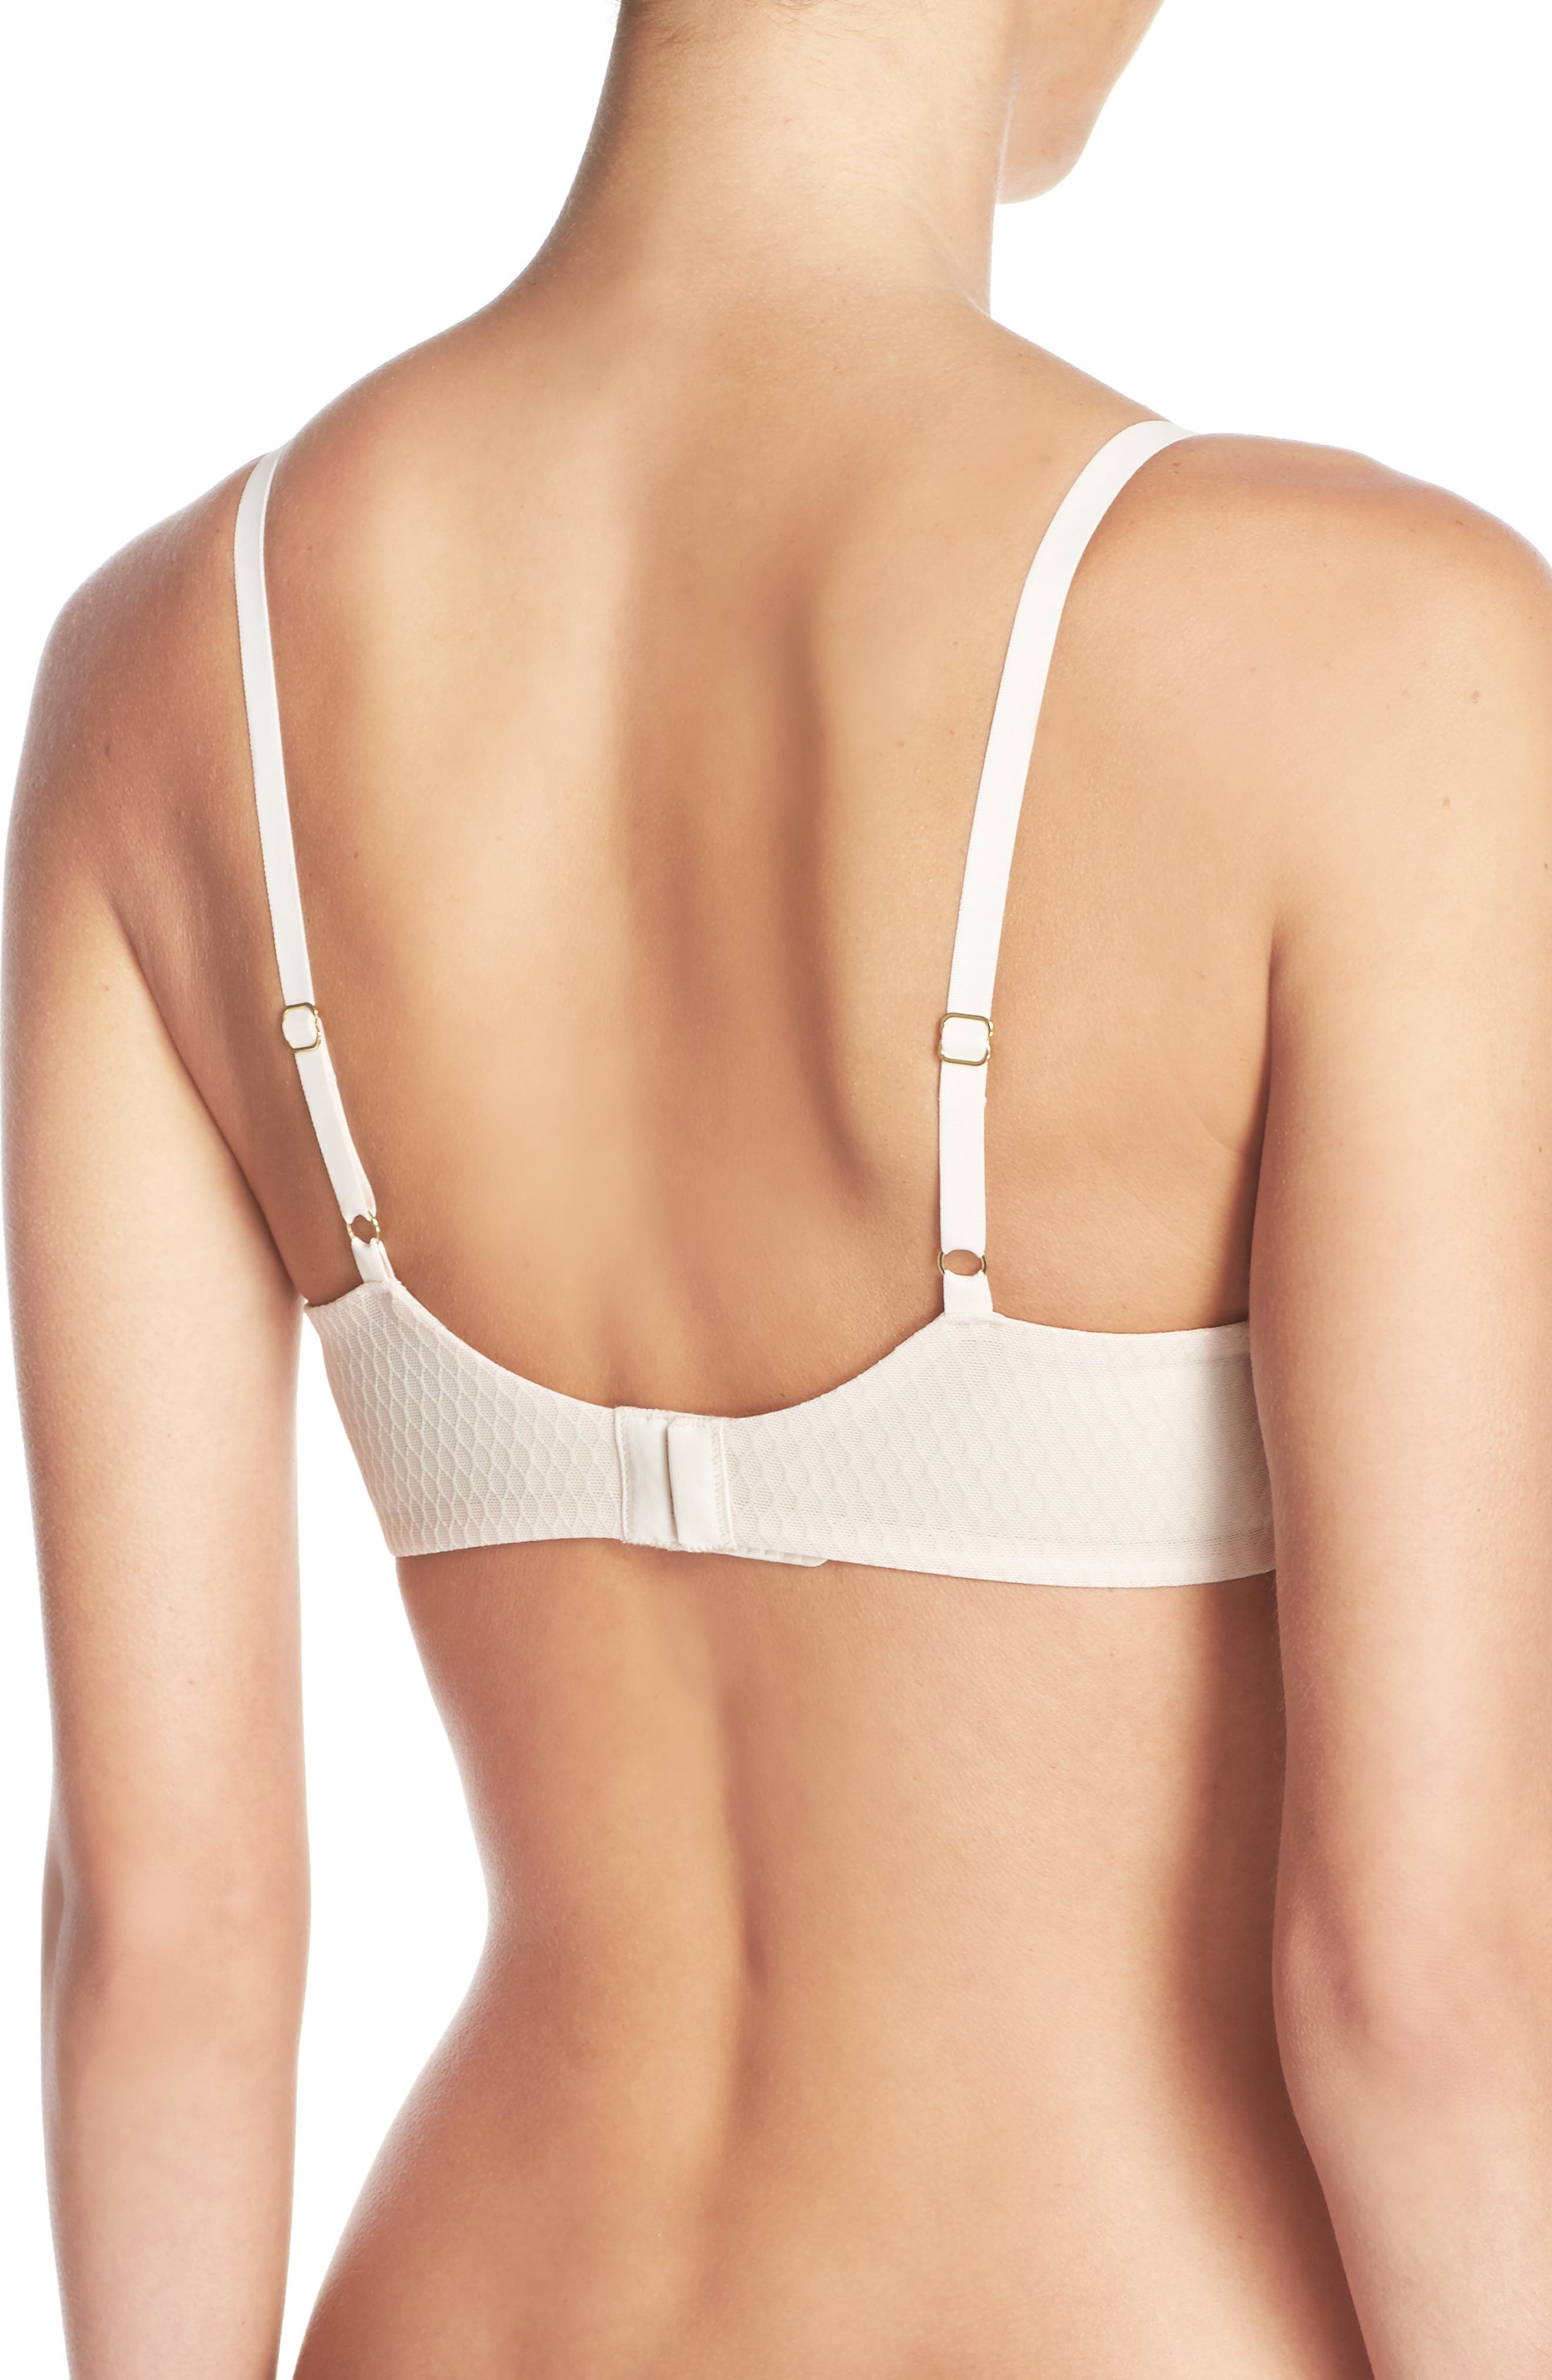 'Paradox' Seamless Underwire Bra,                             Main thumbnail 1, color,                             CASHMERE